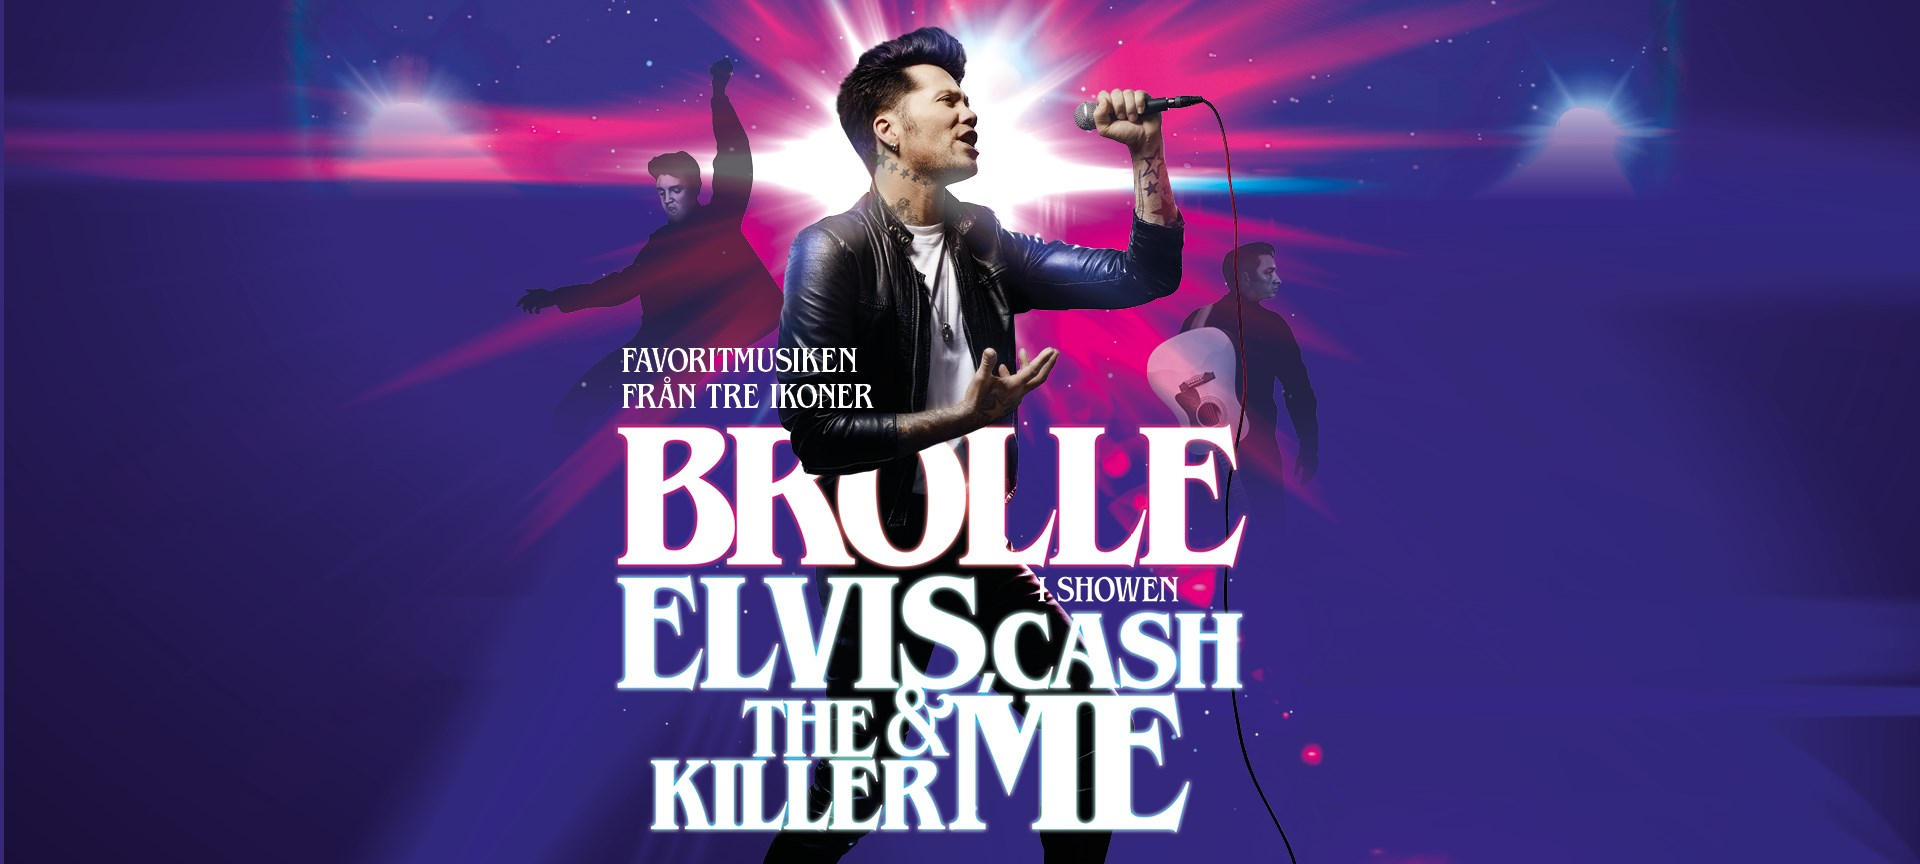 Brolle - ELVIS, CASH, THE KILLER & ME